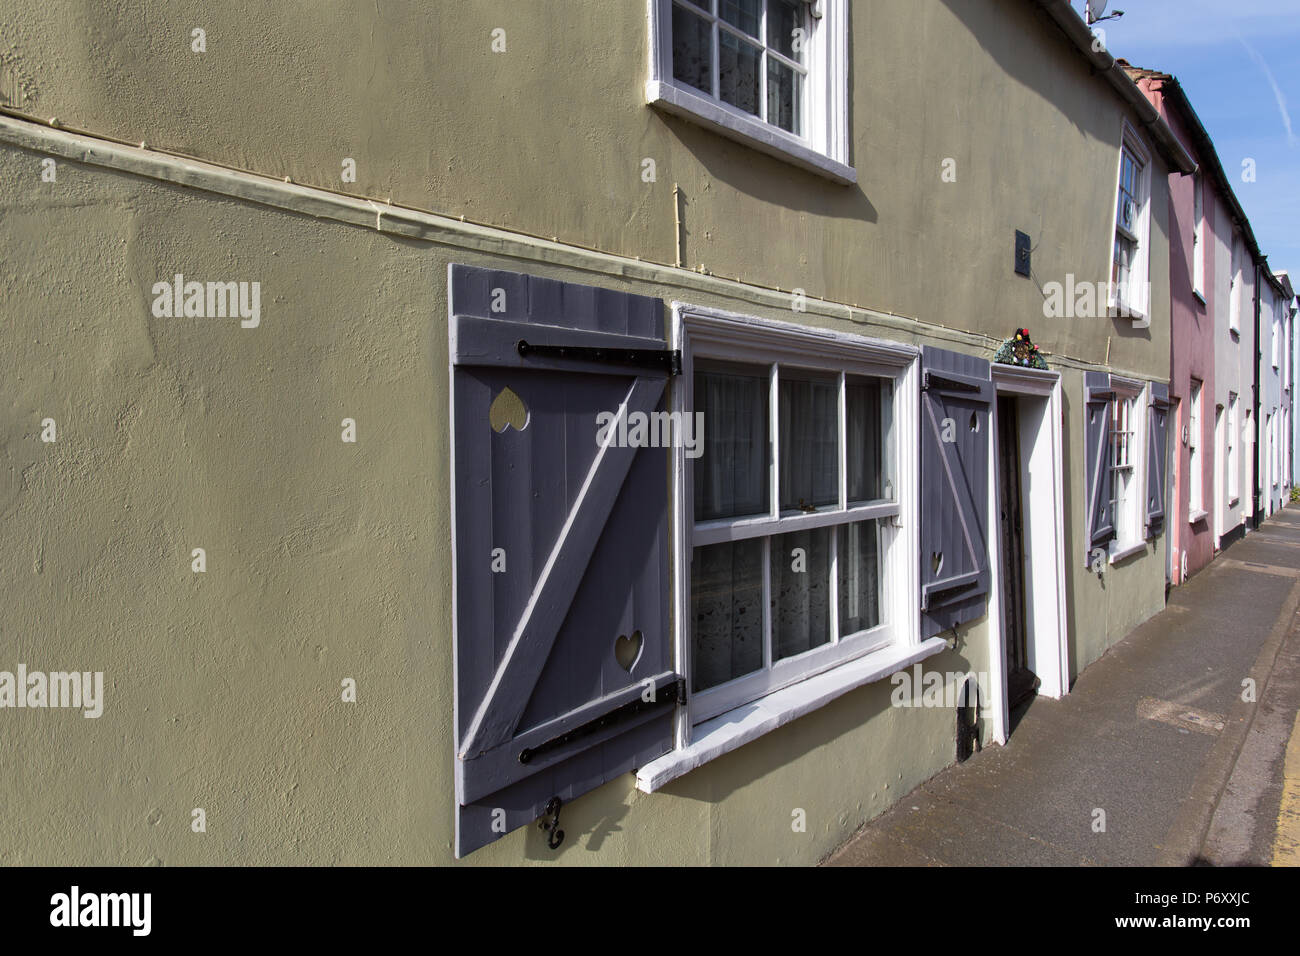 City of Canterbury, England. Picturesque view of Grade II listed houses on Canterbury's Ive Lane, with the Carolean Cottage in the foreground. Stock Photo